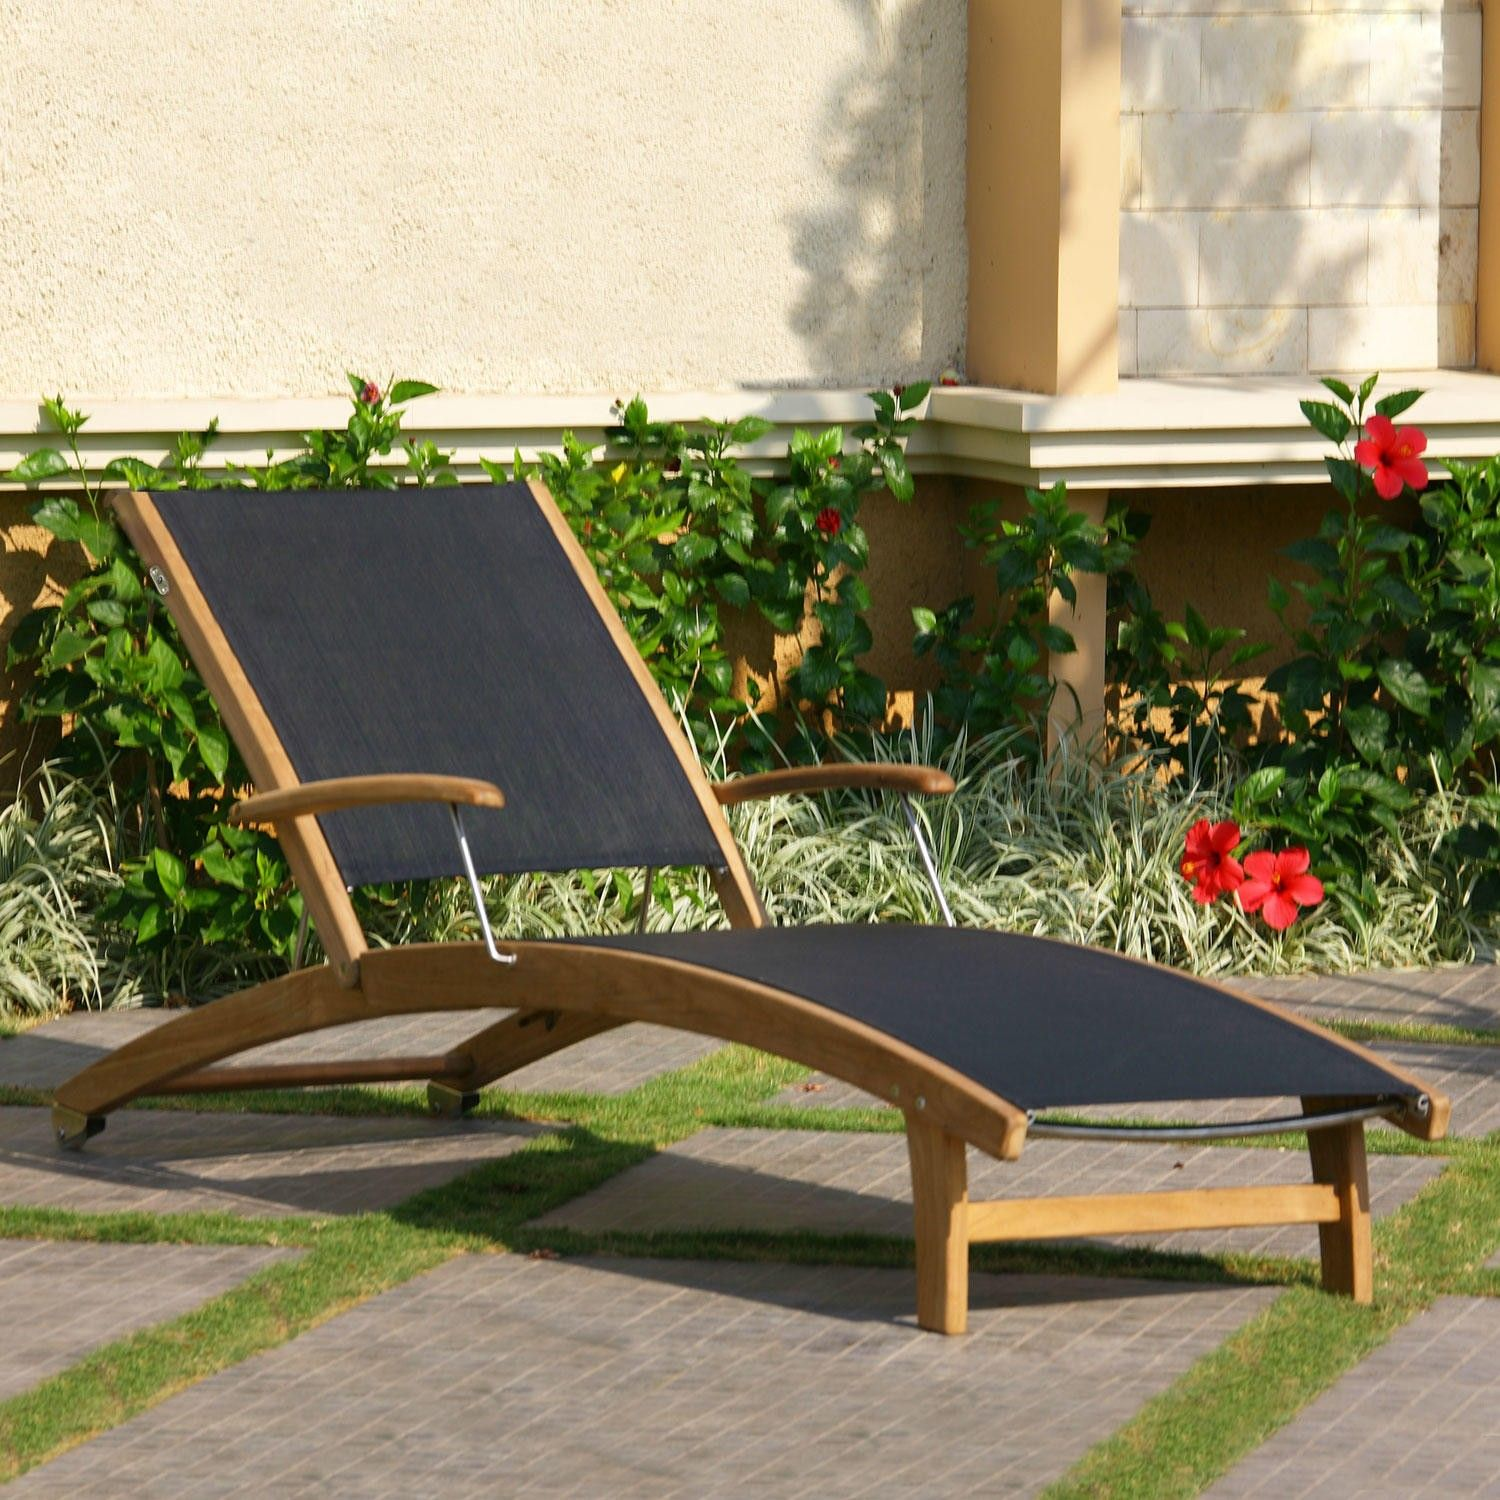 Rivera Teak Sling Lounge Chair Outdoor Chaise Lounges Outdoor